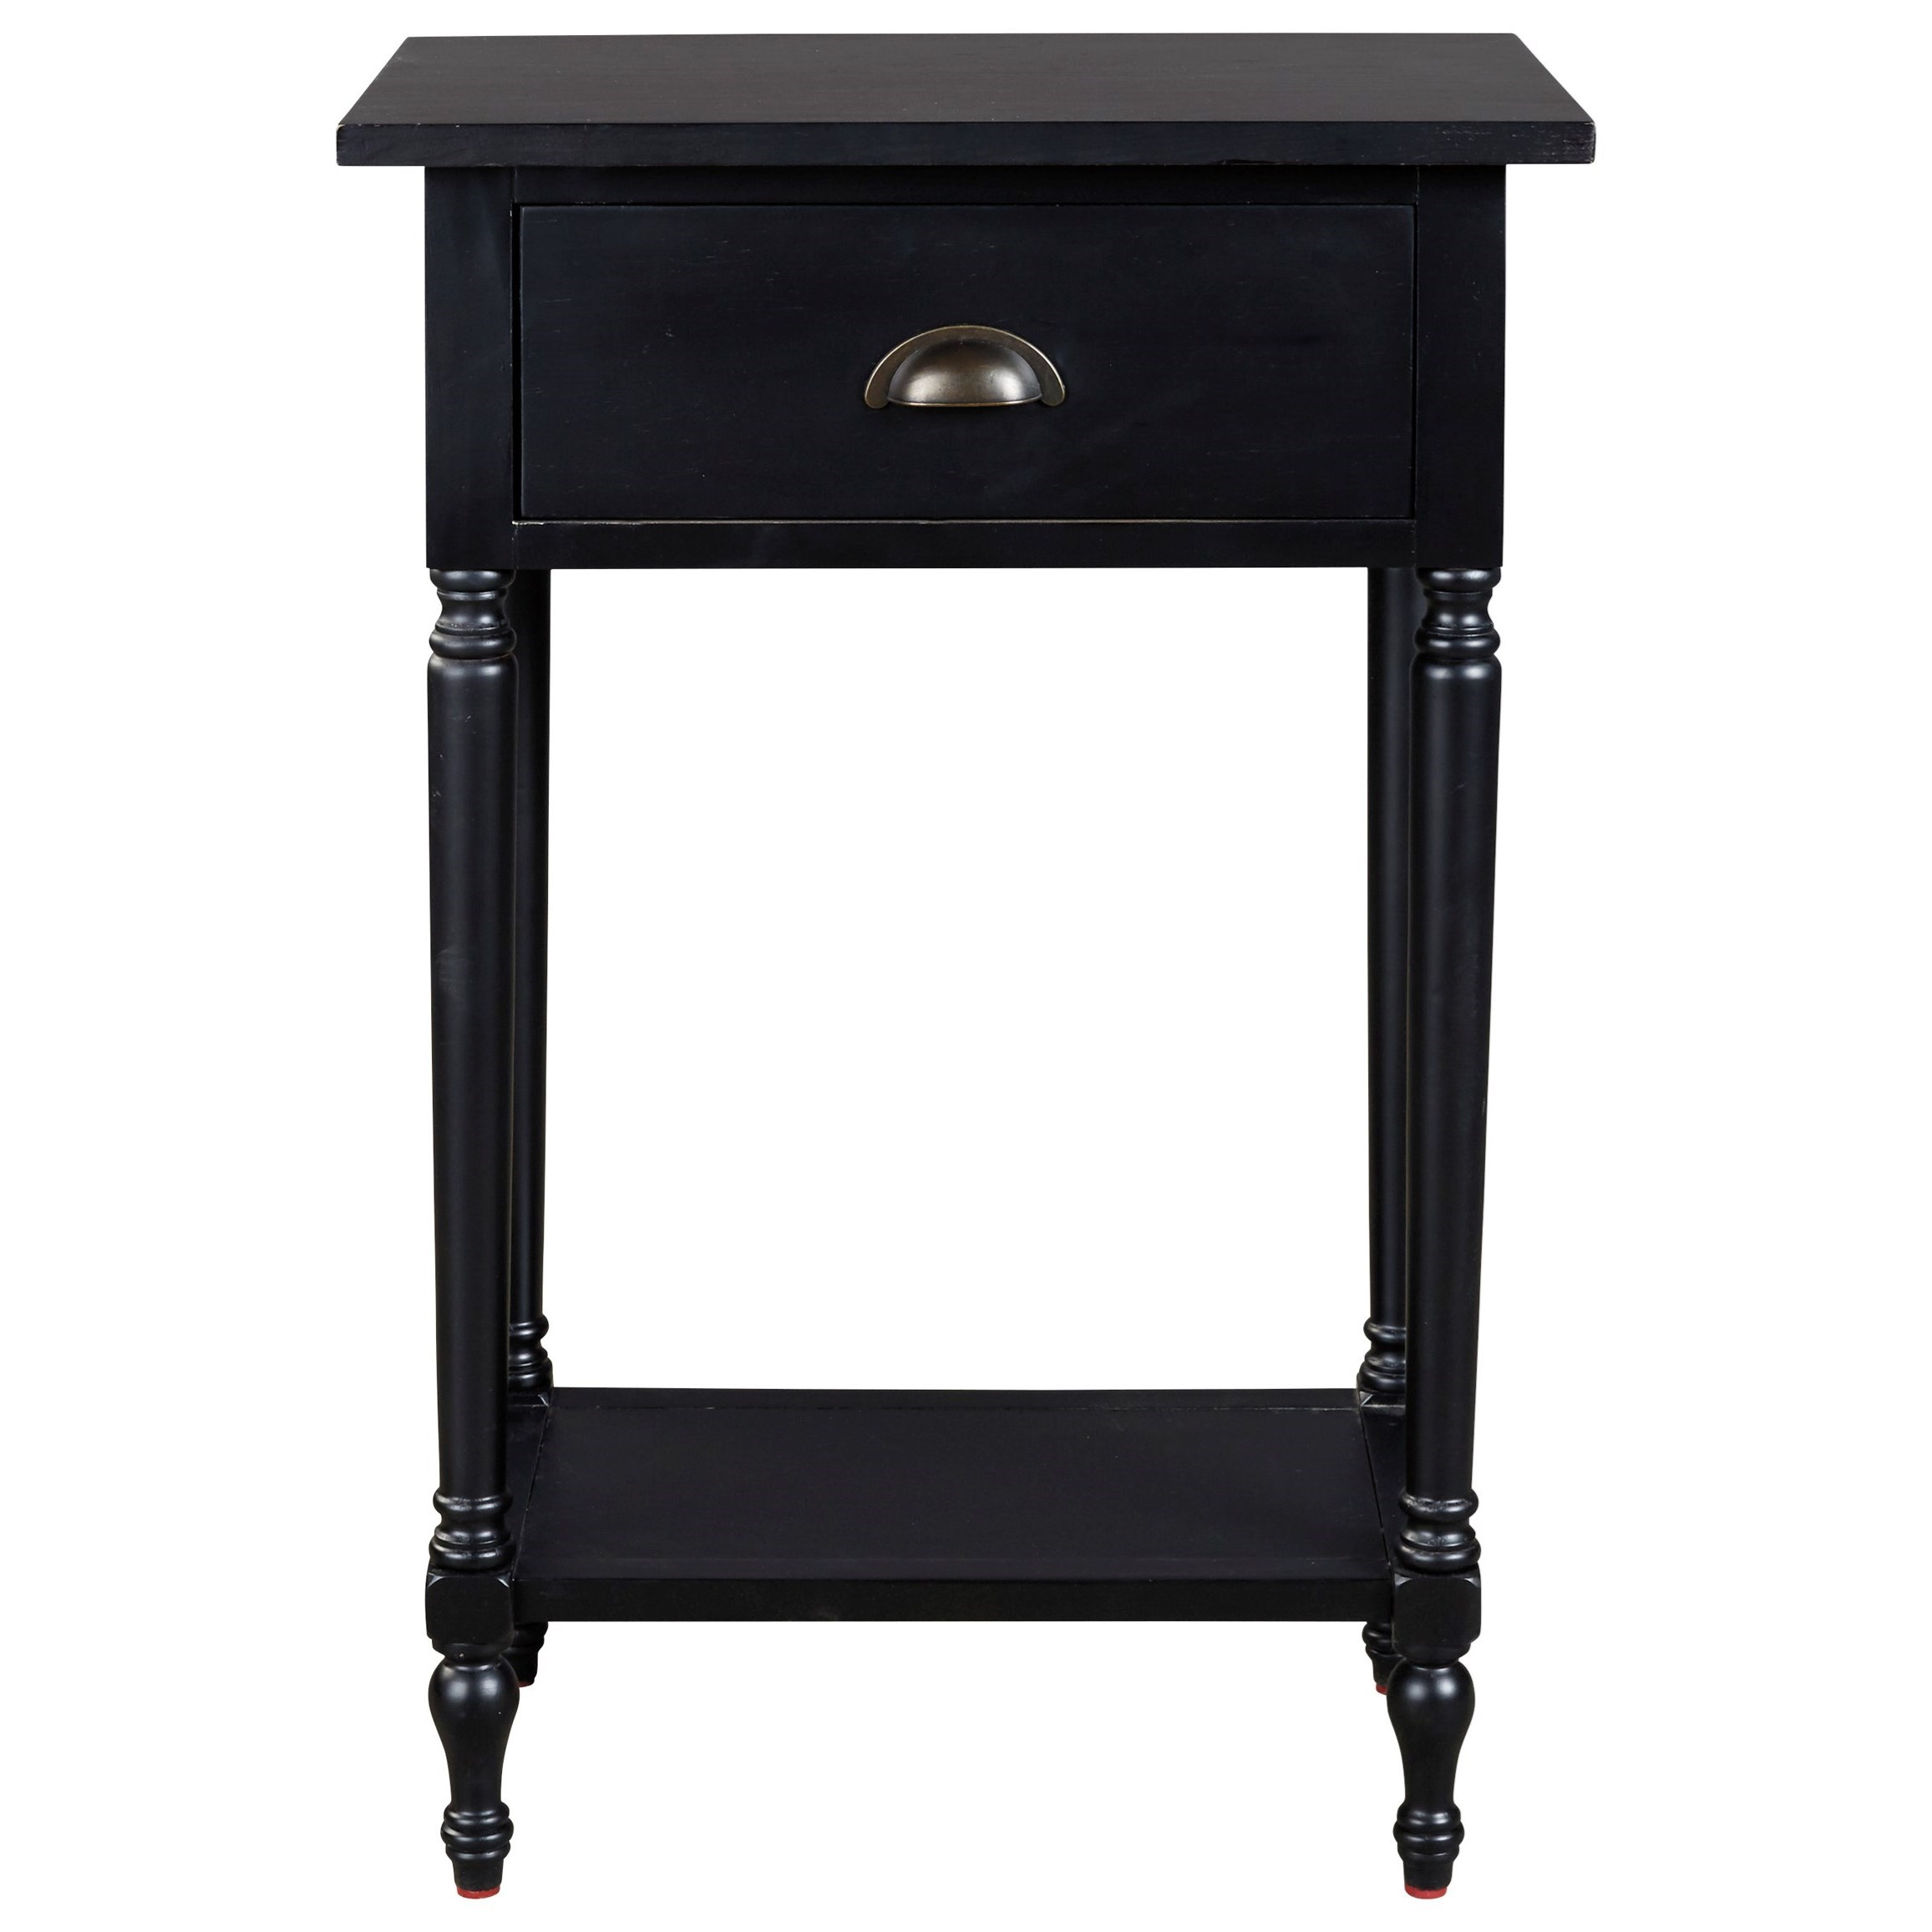 Black End Tables With Drawer Juinville Tall Accent Table With 1 Drawer 1 Shelf By Signature Design By Ashley At Wayside Furniture